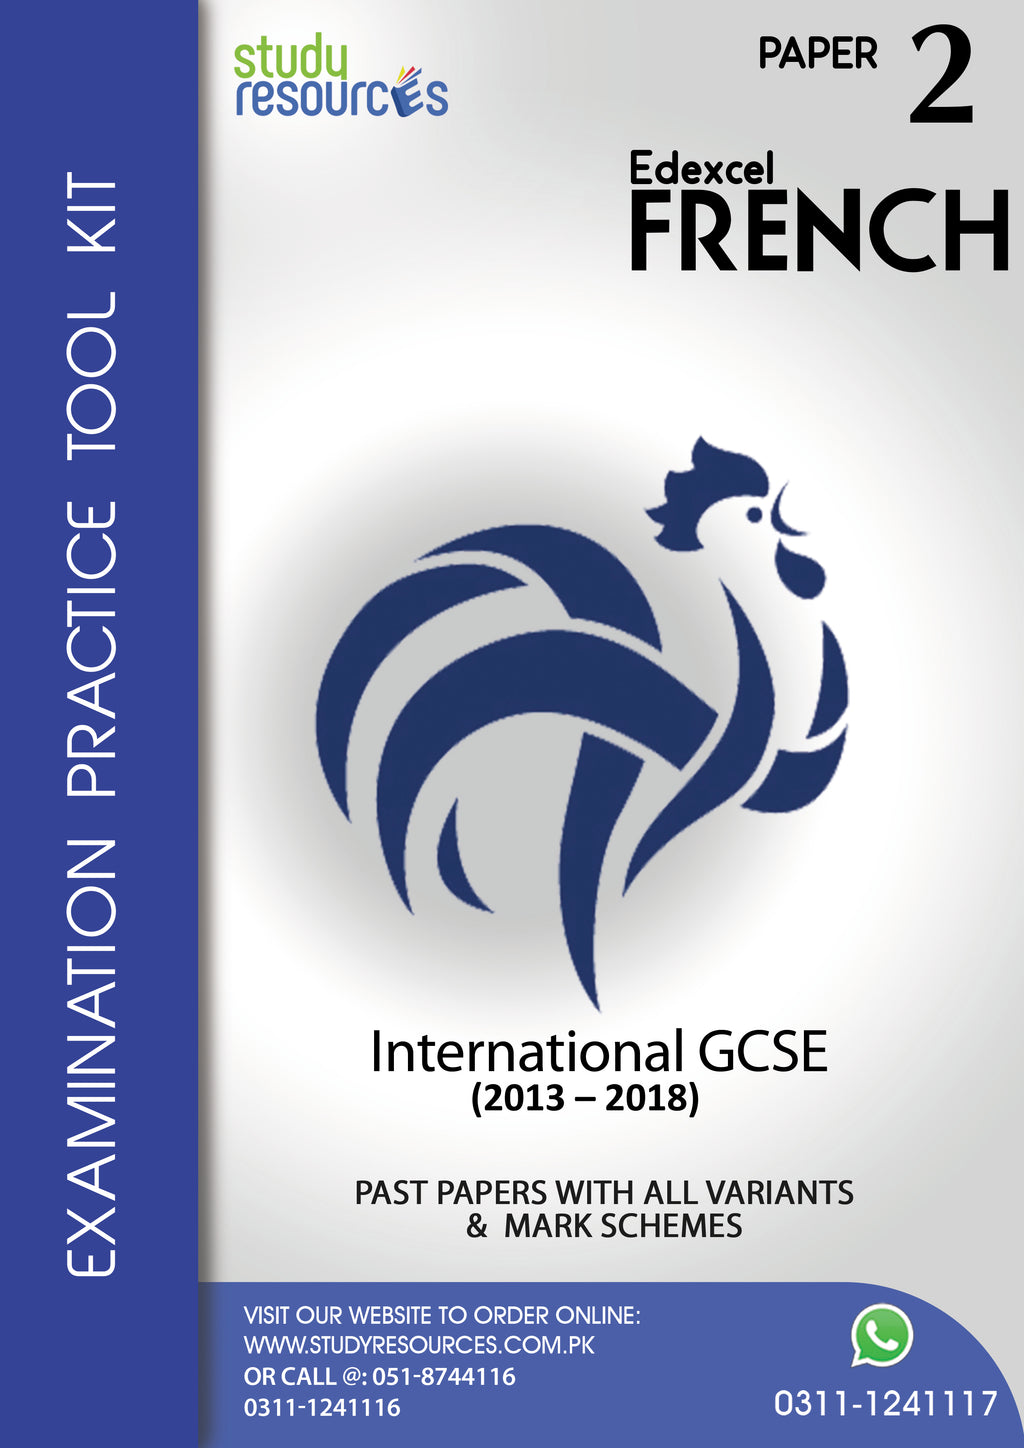 Edexcel IGCSE French P-2 Past Papers (2013-2018)